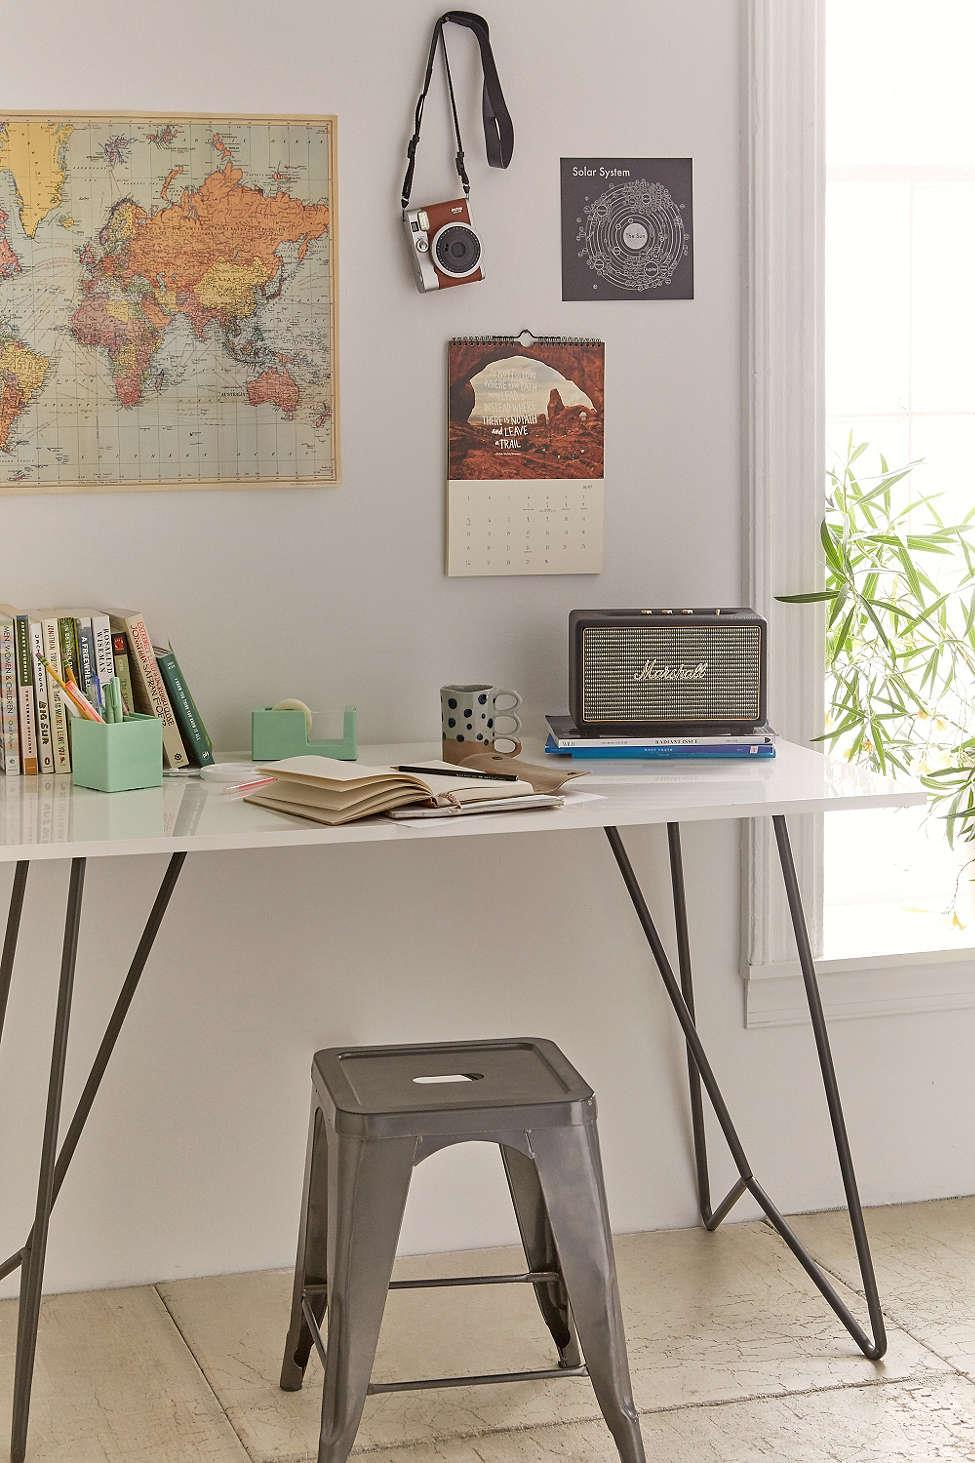 Metal desk from Urban Outfitters